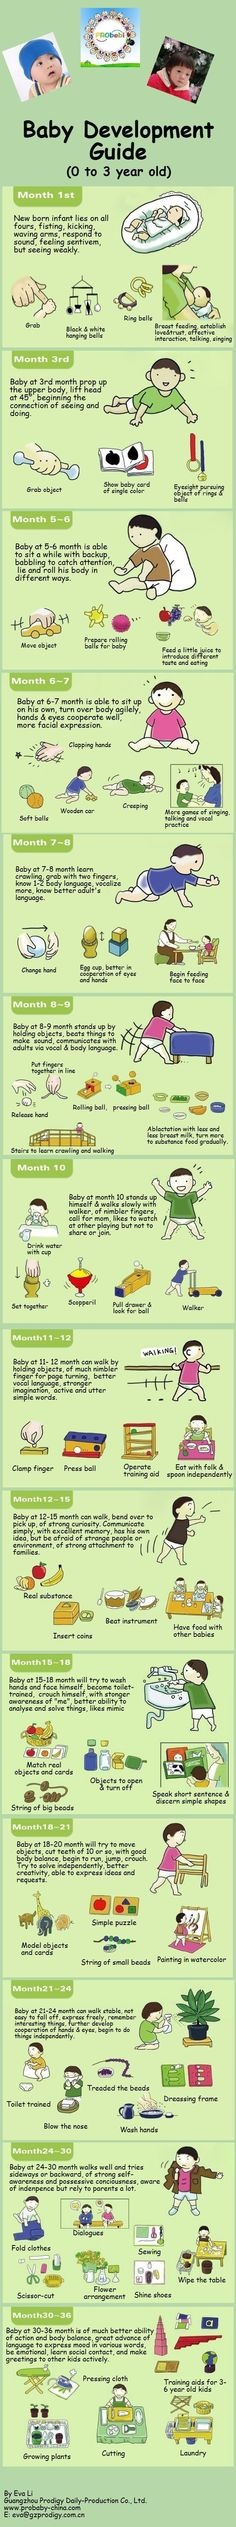 Baby Development Guide | @Piktochart #Infographic Editor